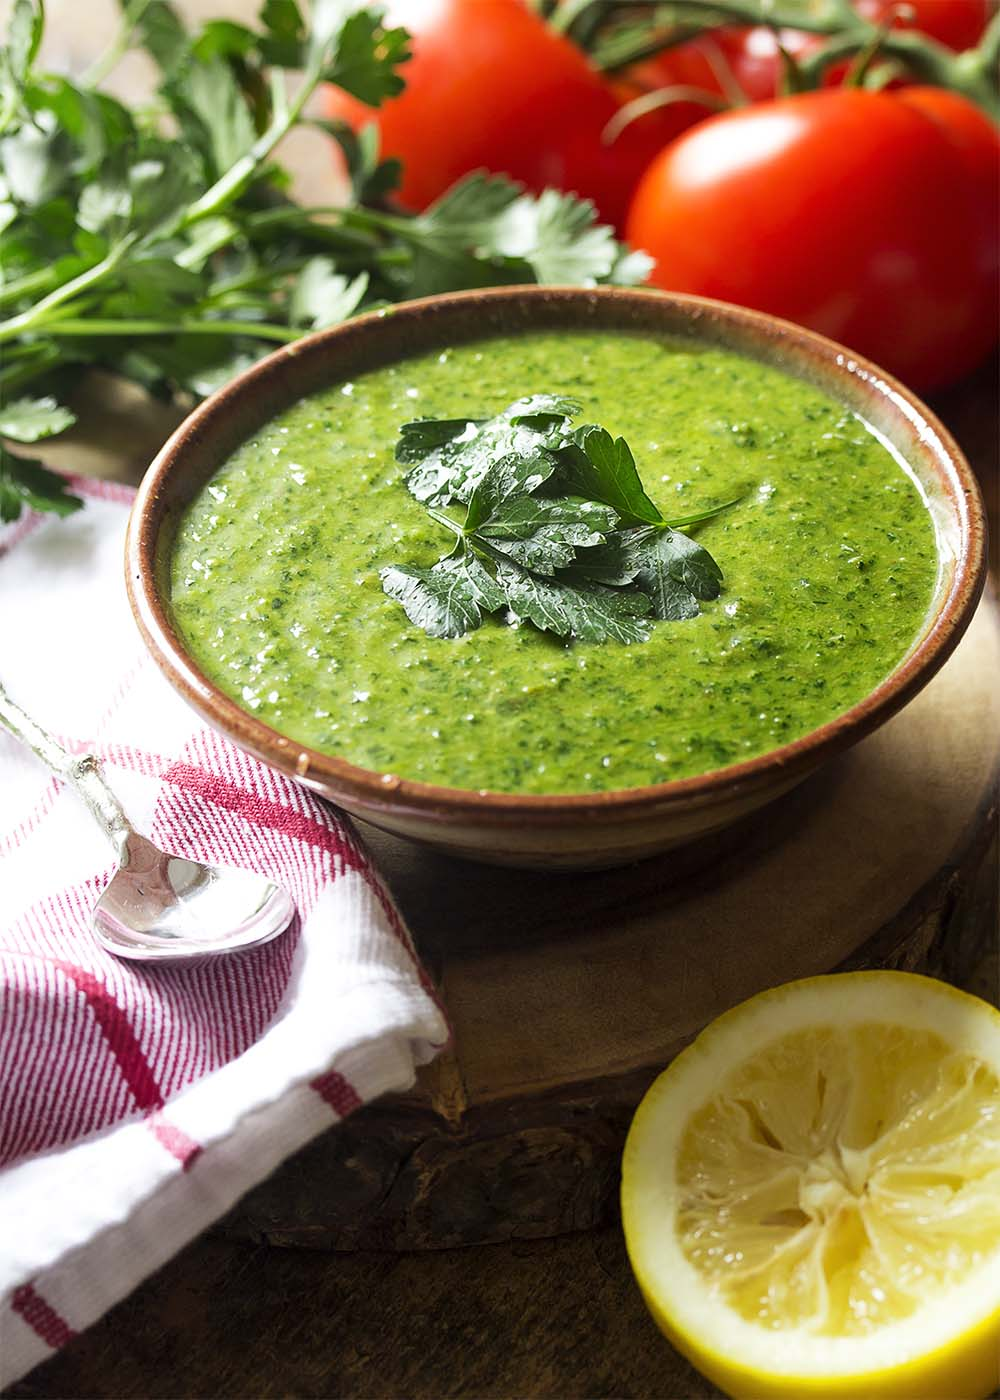 A bowl of green Italian herb sauce arranged with parsley and lemon.